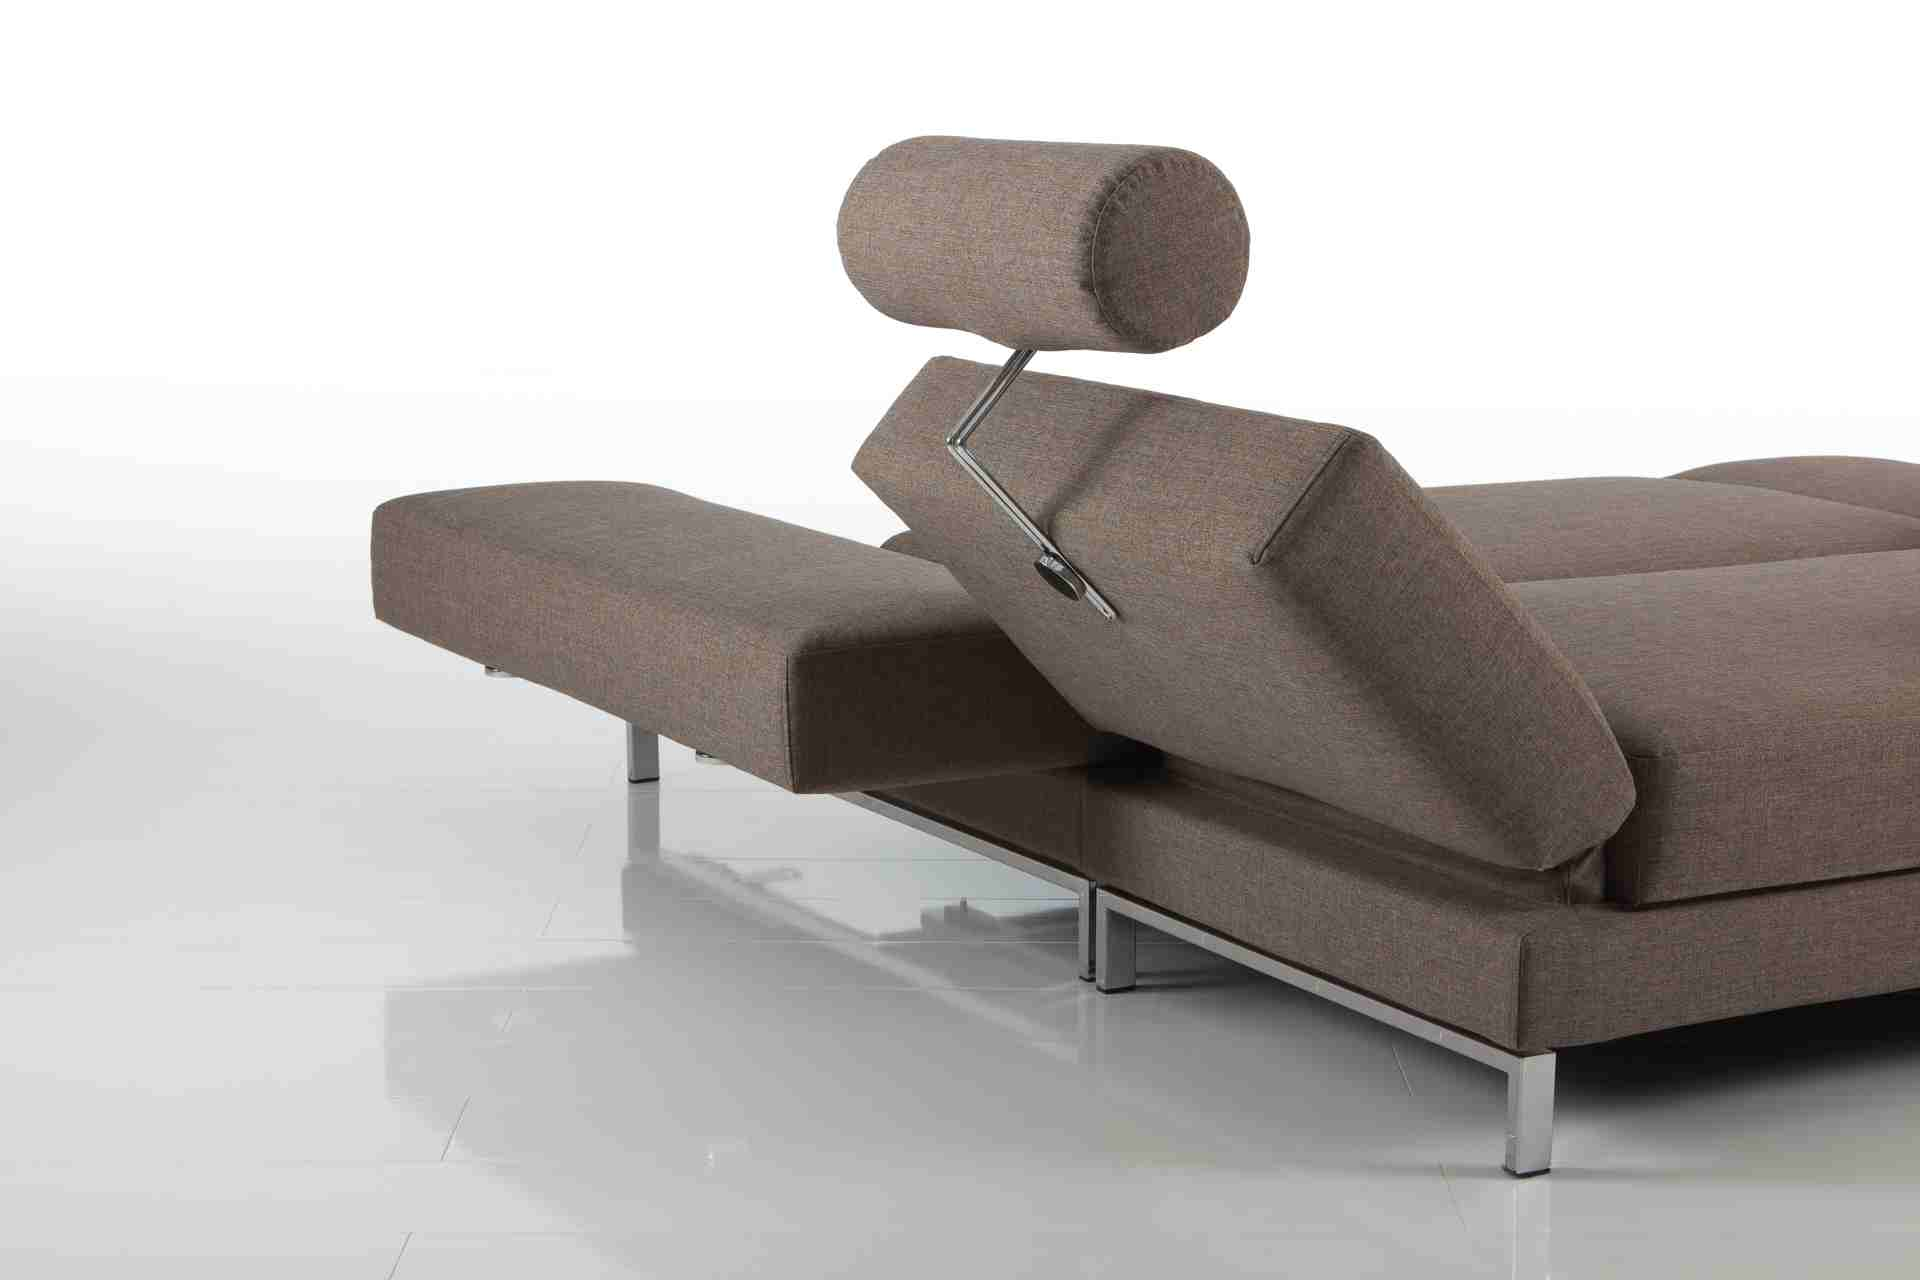 Wohnideen Katalog Sofa Four-two - Biomöbel Genske